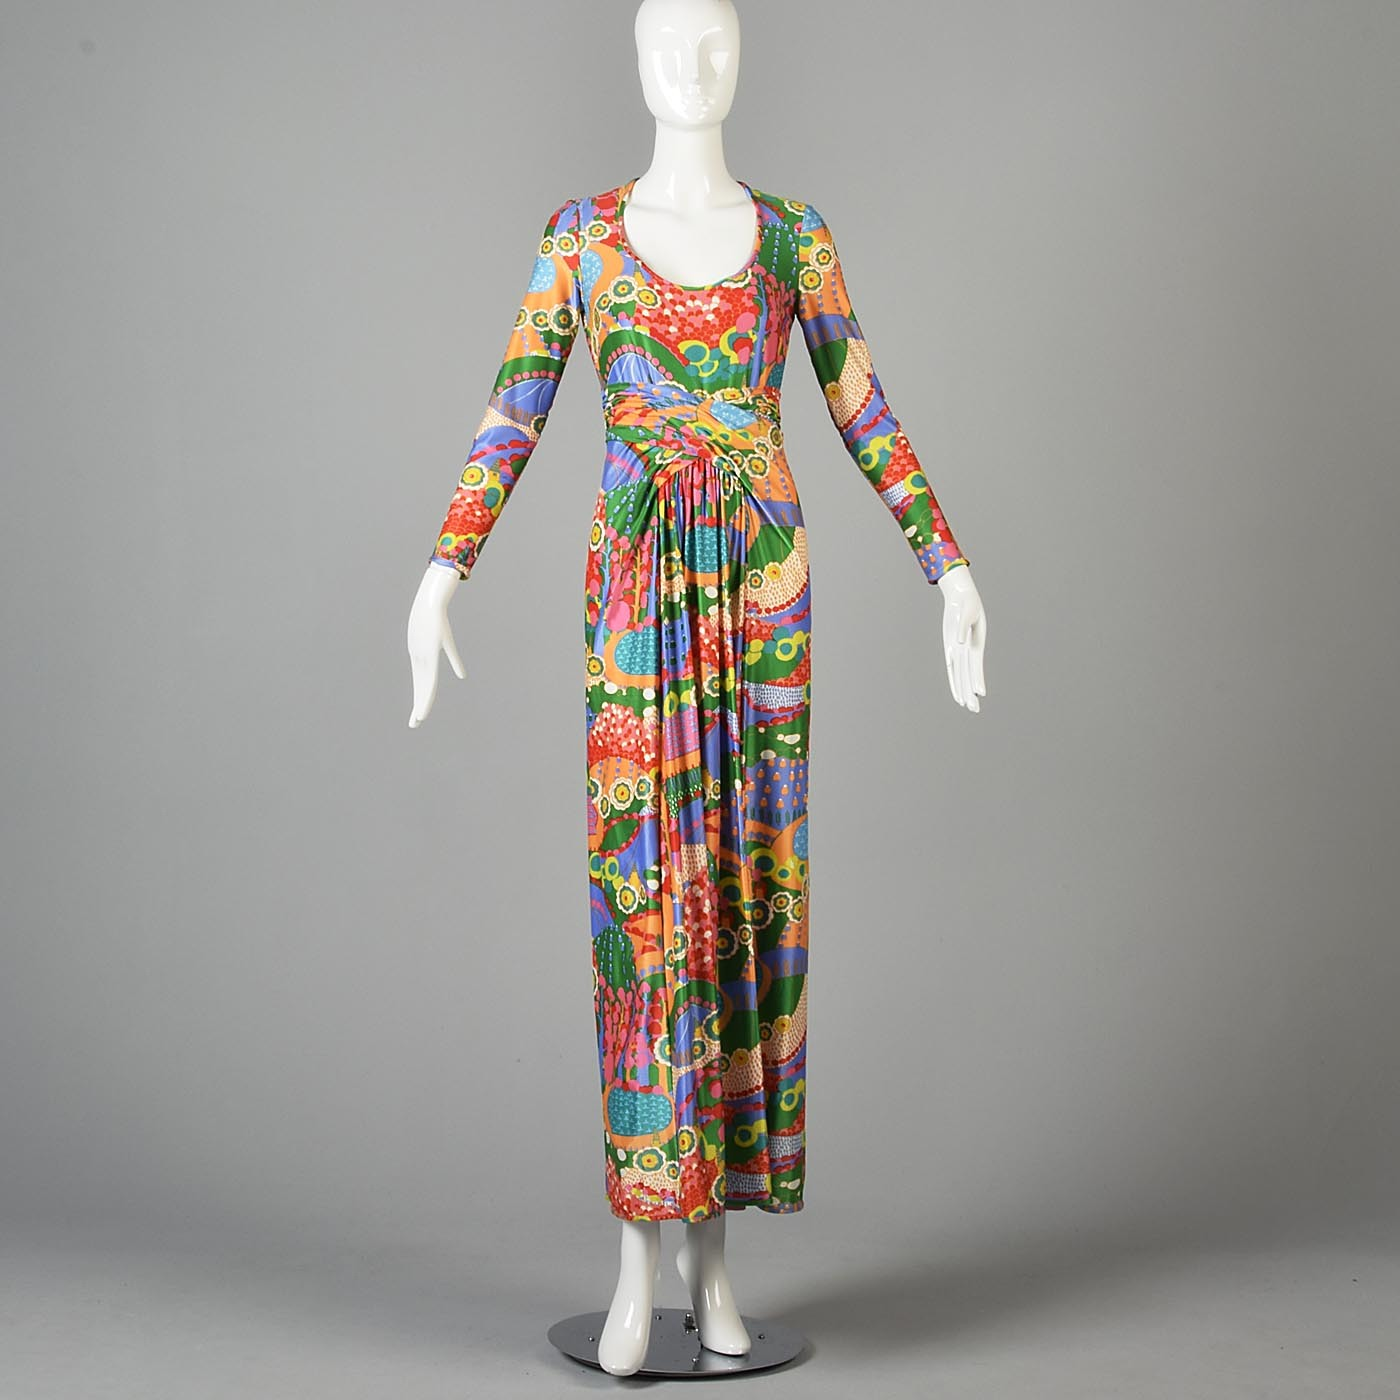 Robert David Morton Maxi Dress in a Signed Psychedelic Print